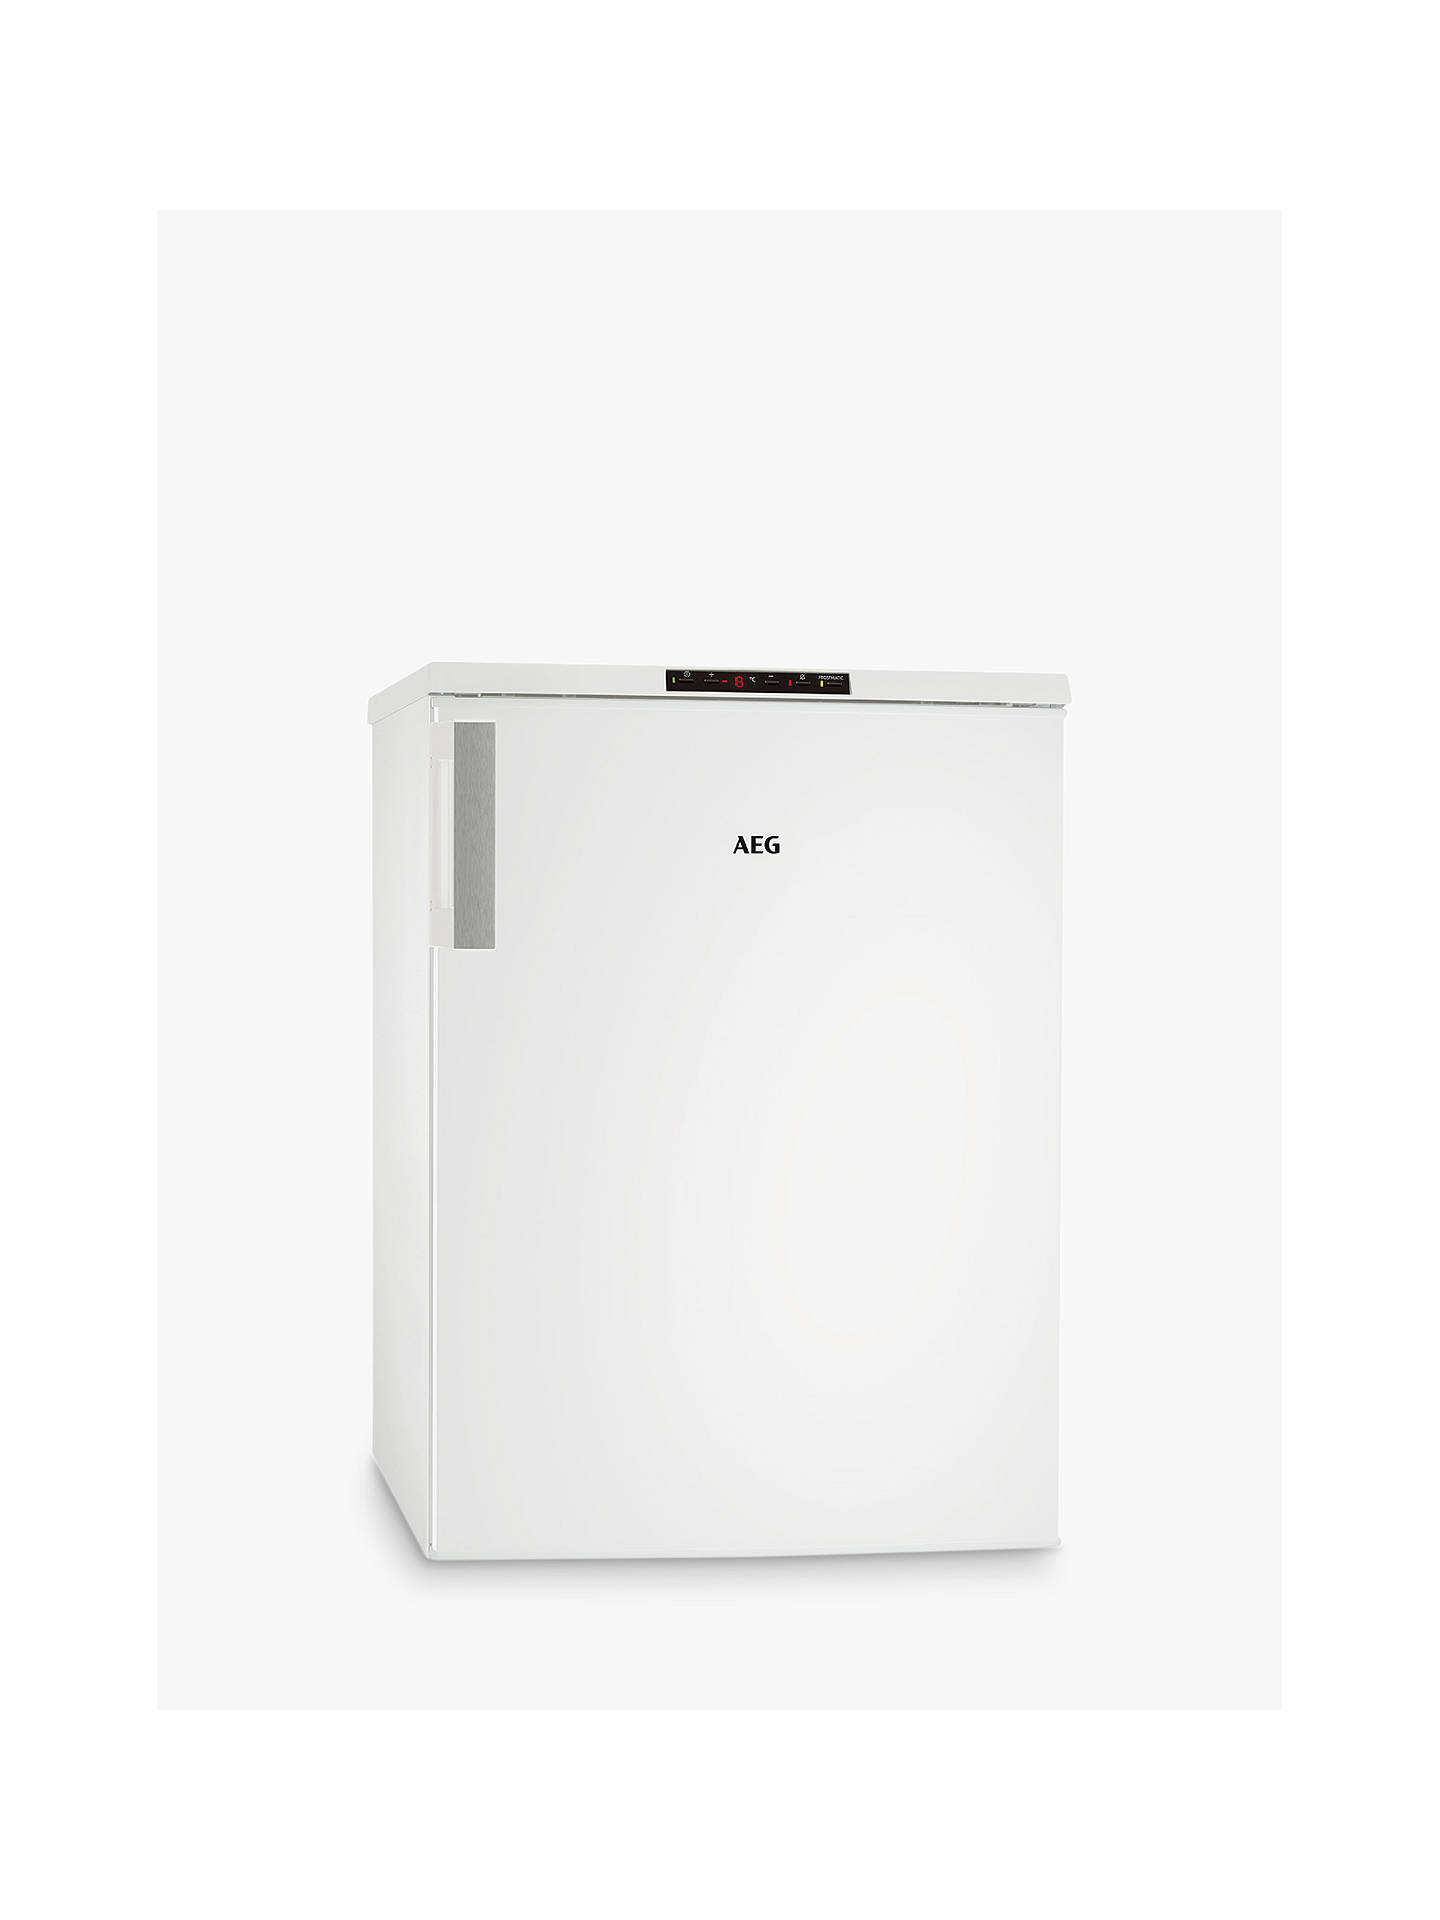 BuyAEG ATB8101VNW Freestanding Under Counter Freezer, A+ Energy Rating, 60cm Wide, White Online at johnlewis.com